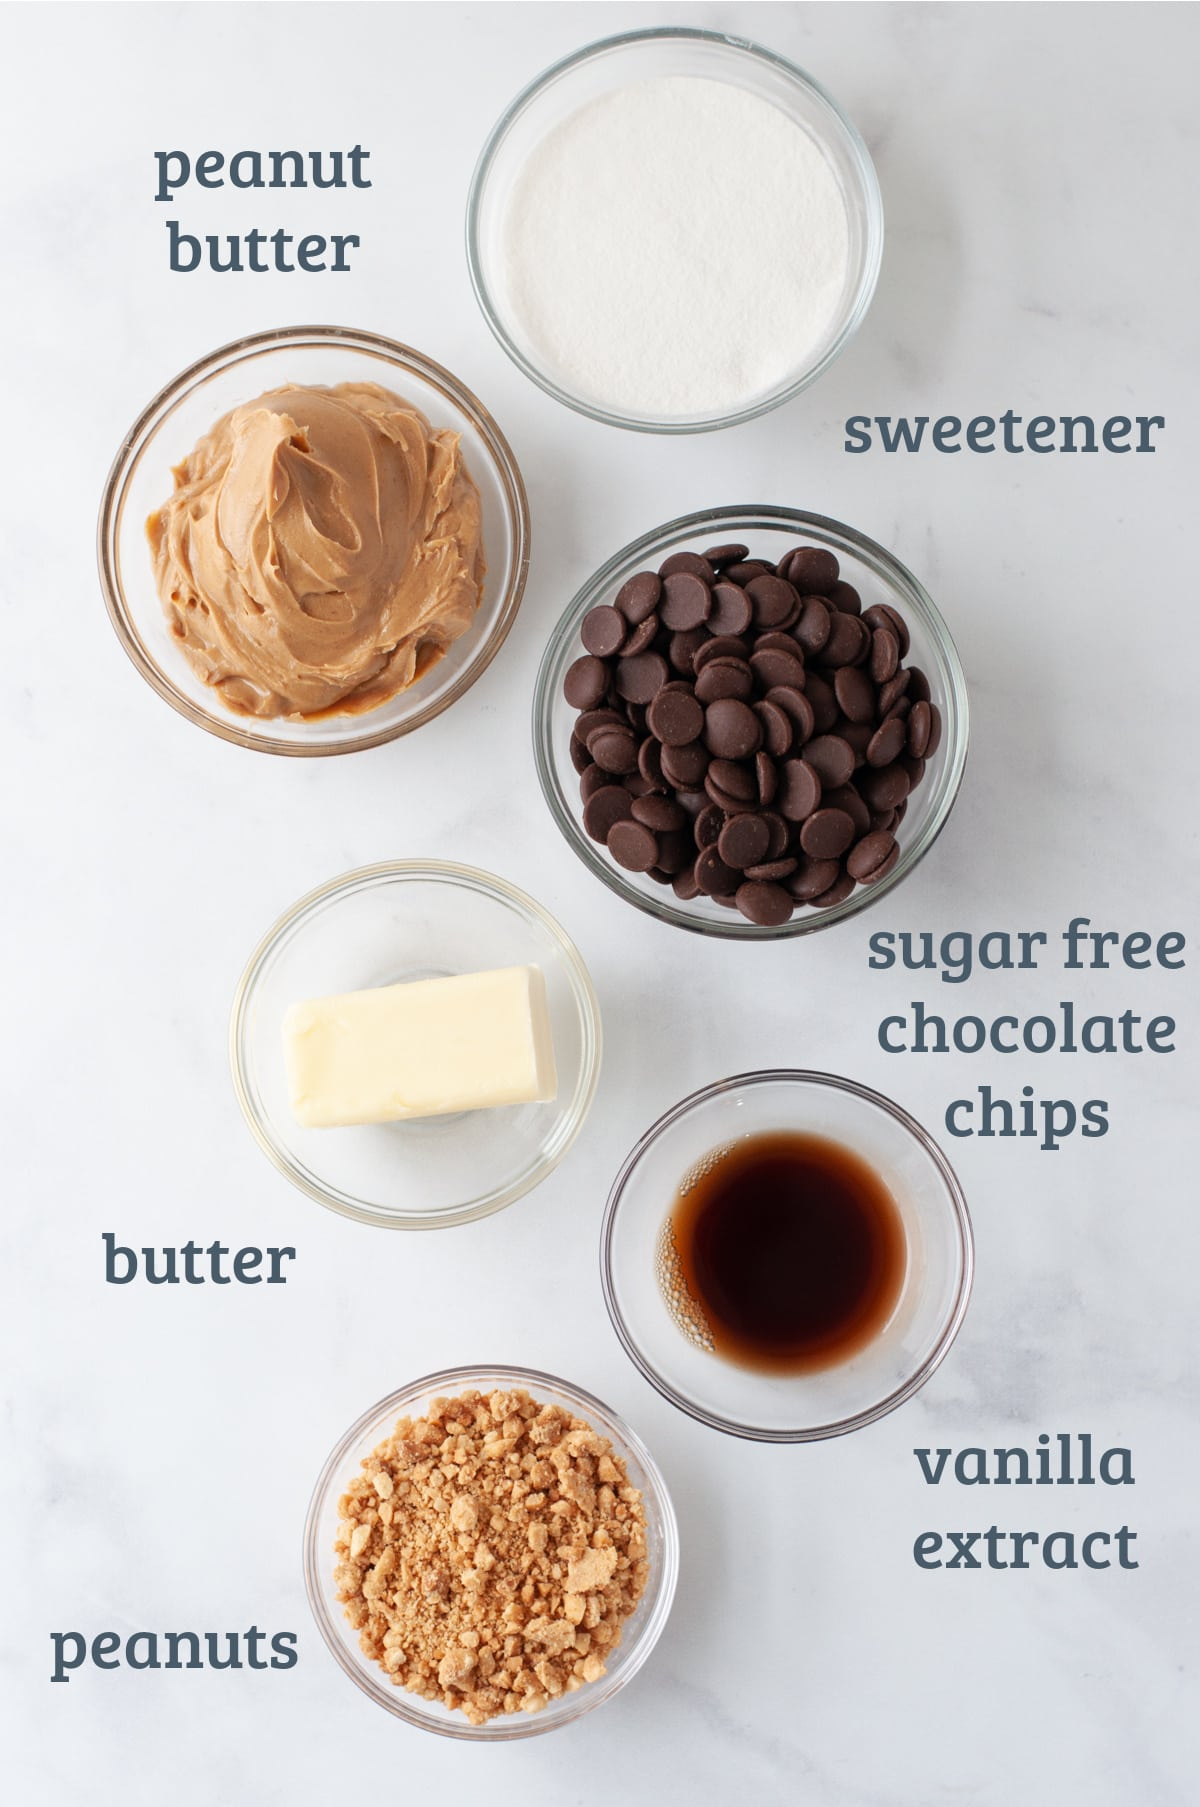 Ingredients arranged in individual ramekins - peanut butter, sweetener, chocolate chips, butter, peanuts, and vanilla extract